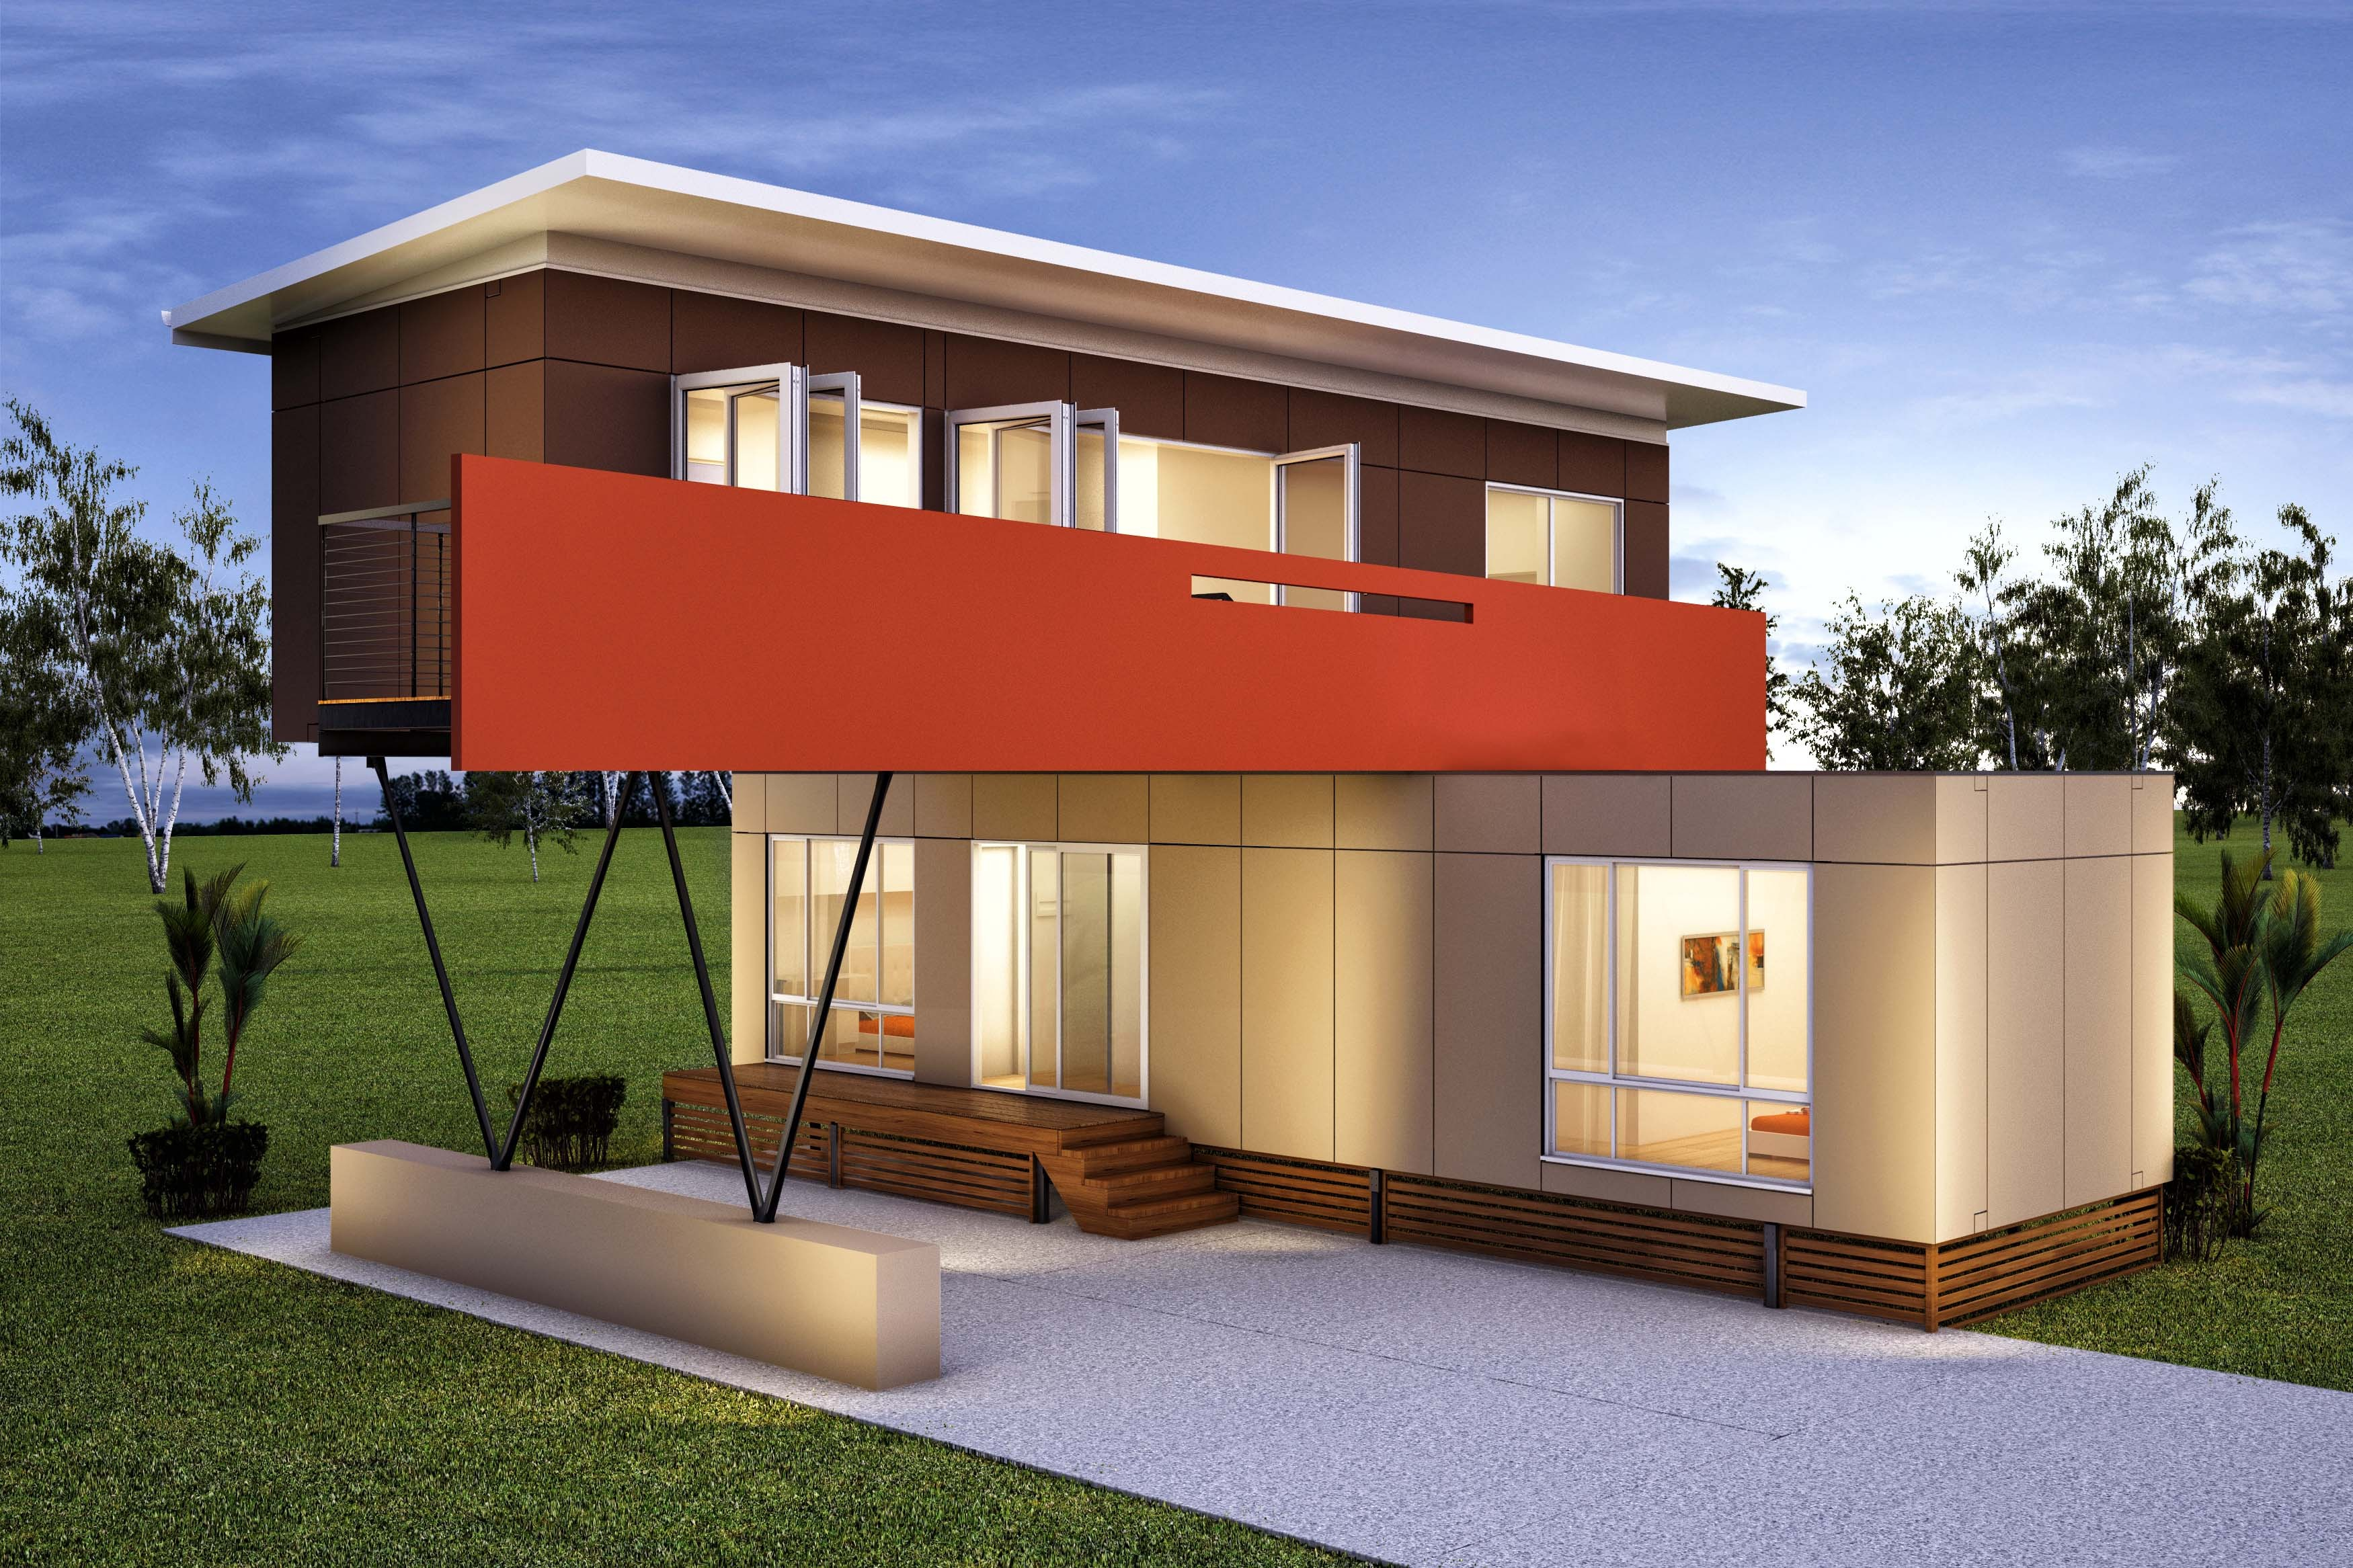 5 luxury container home designs  Container Living